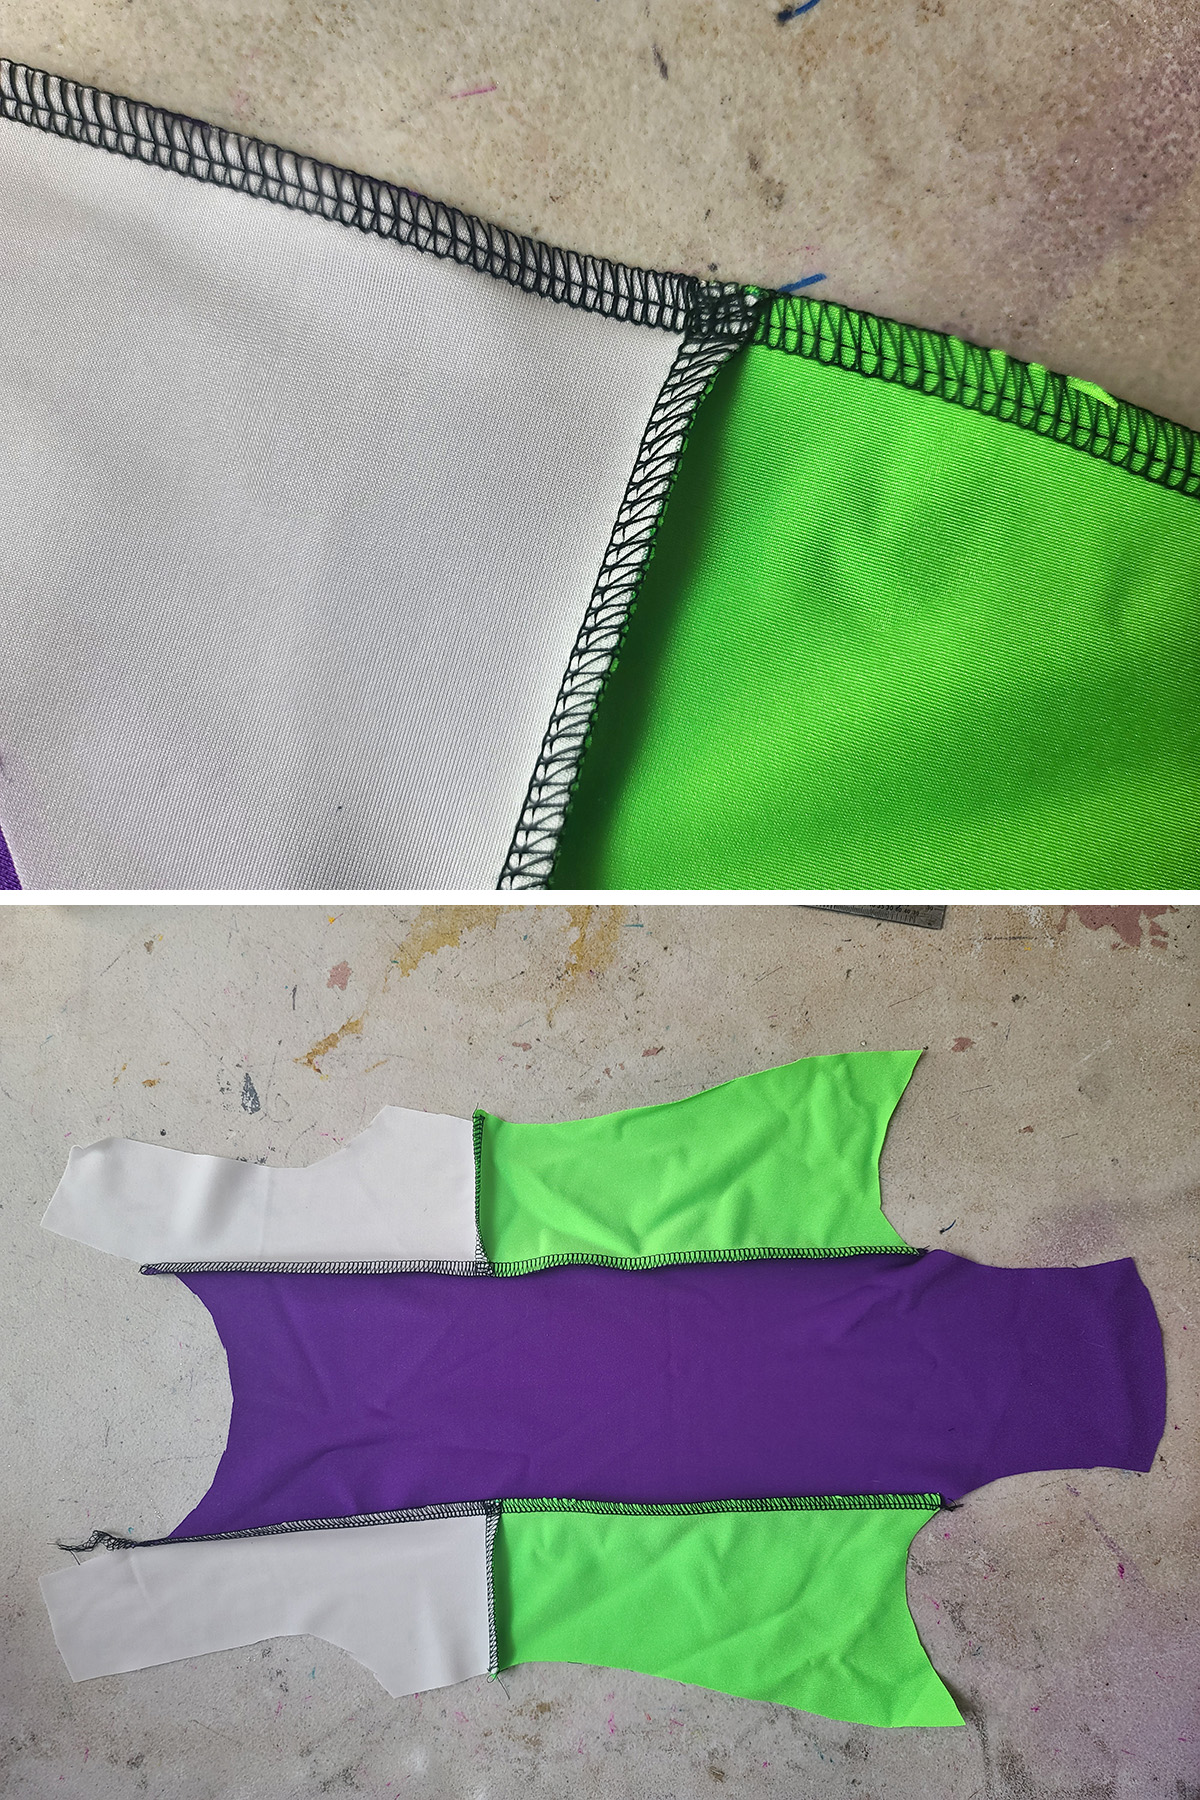 A two part compilation image showing the underside of a seam between the white and green pieces, with the seam sewn over towards the green side.